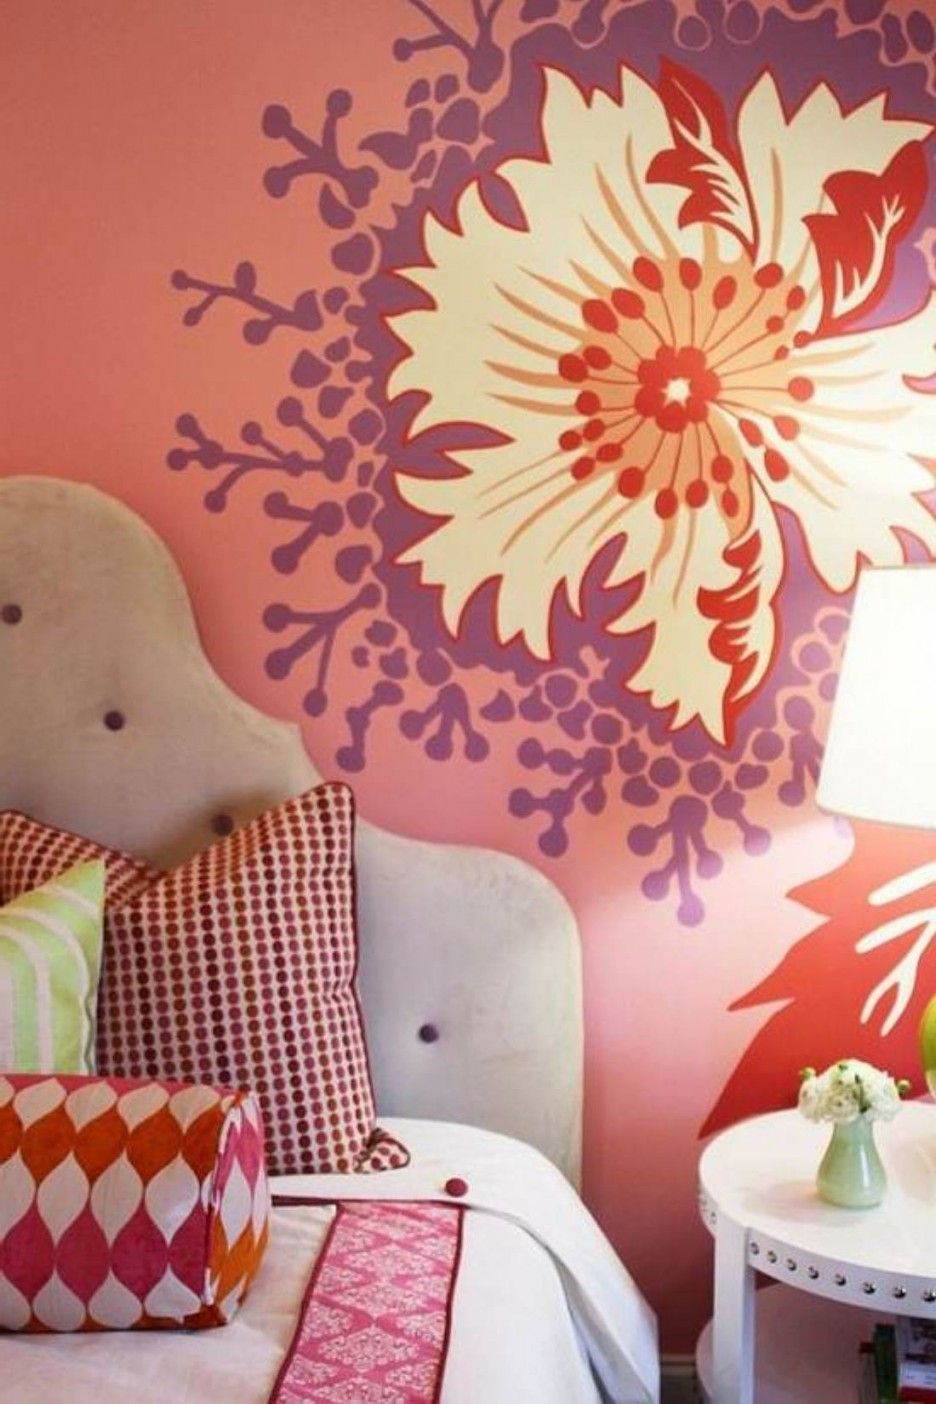 Decorating smart idea to inspire beautiful painting in the room